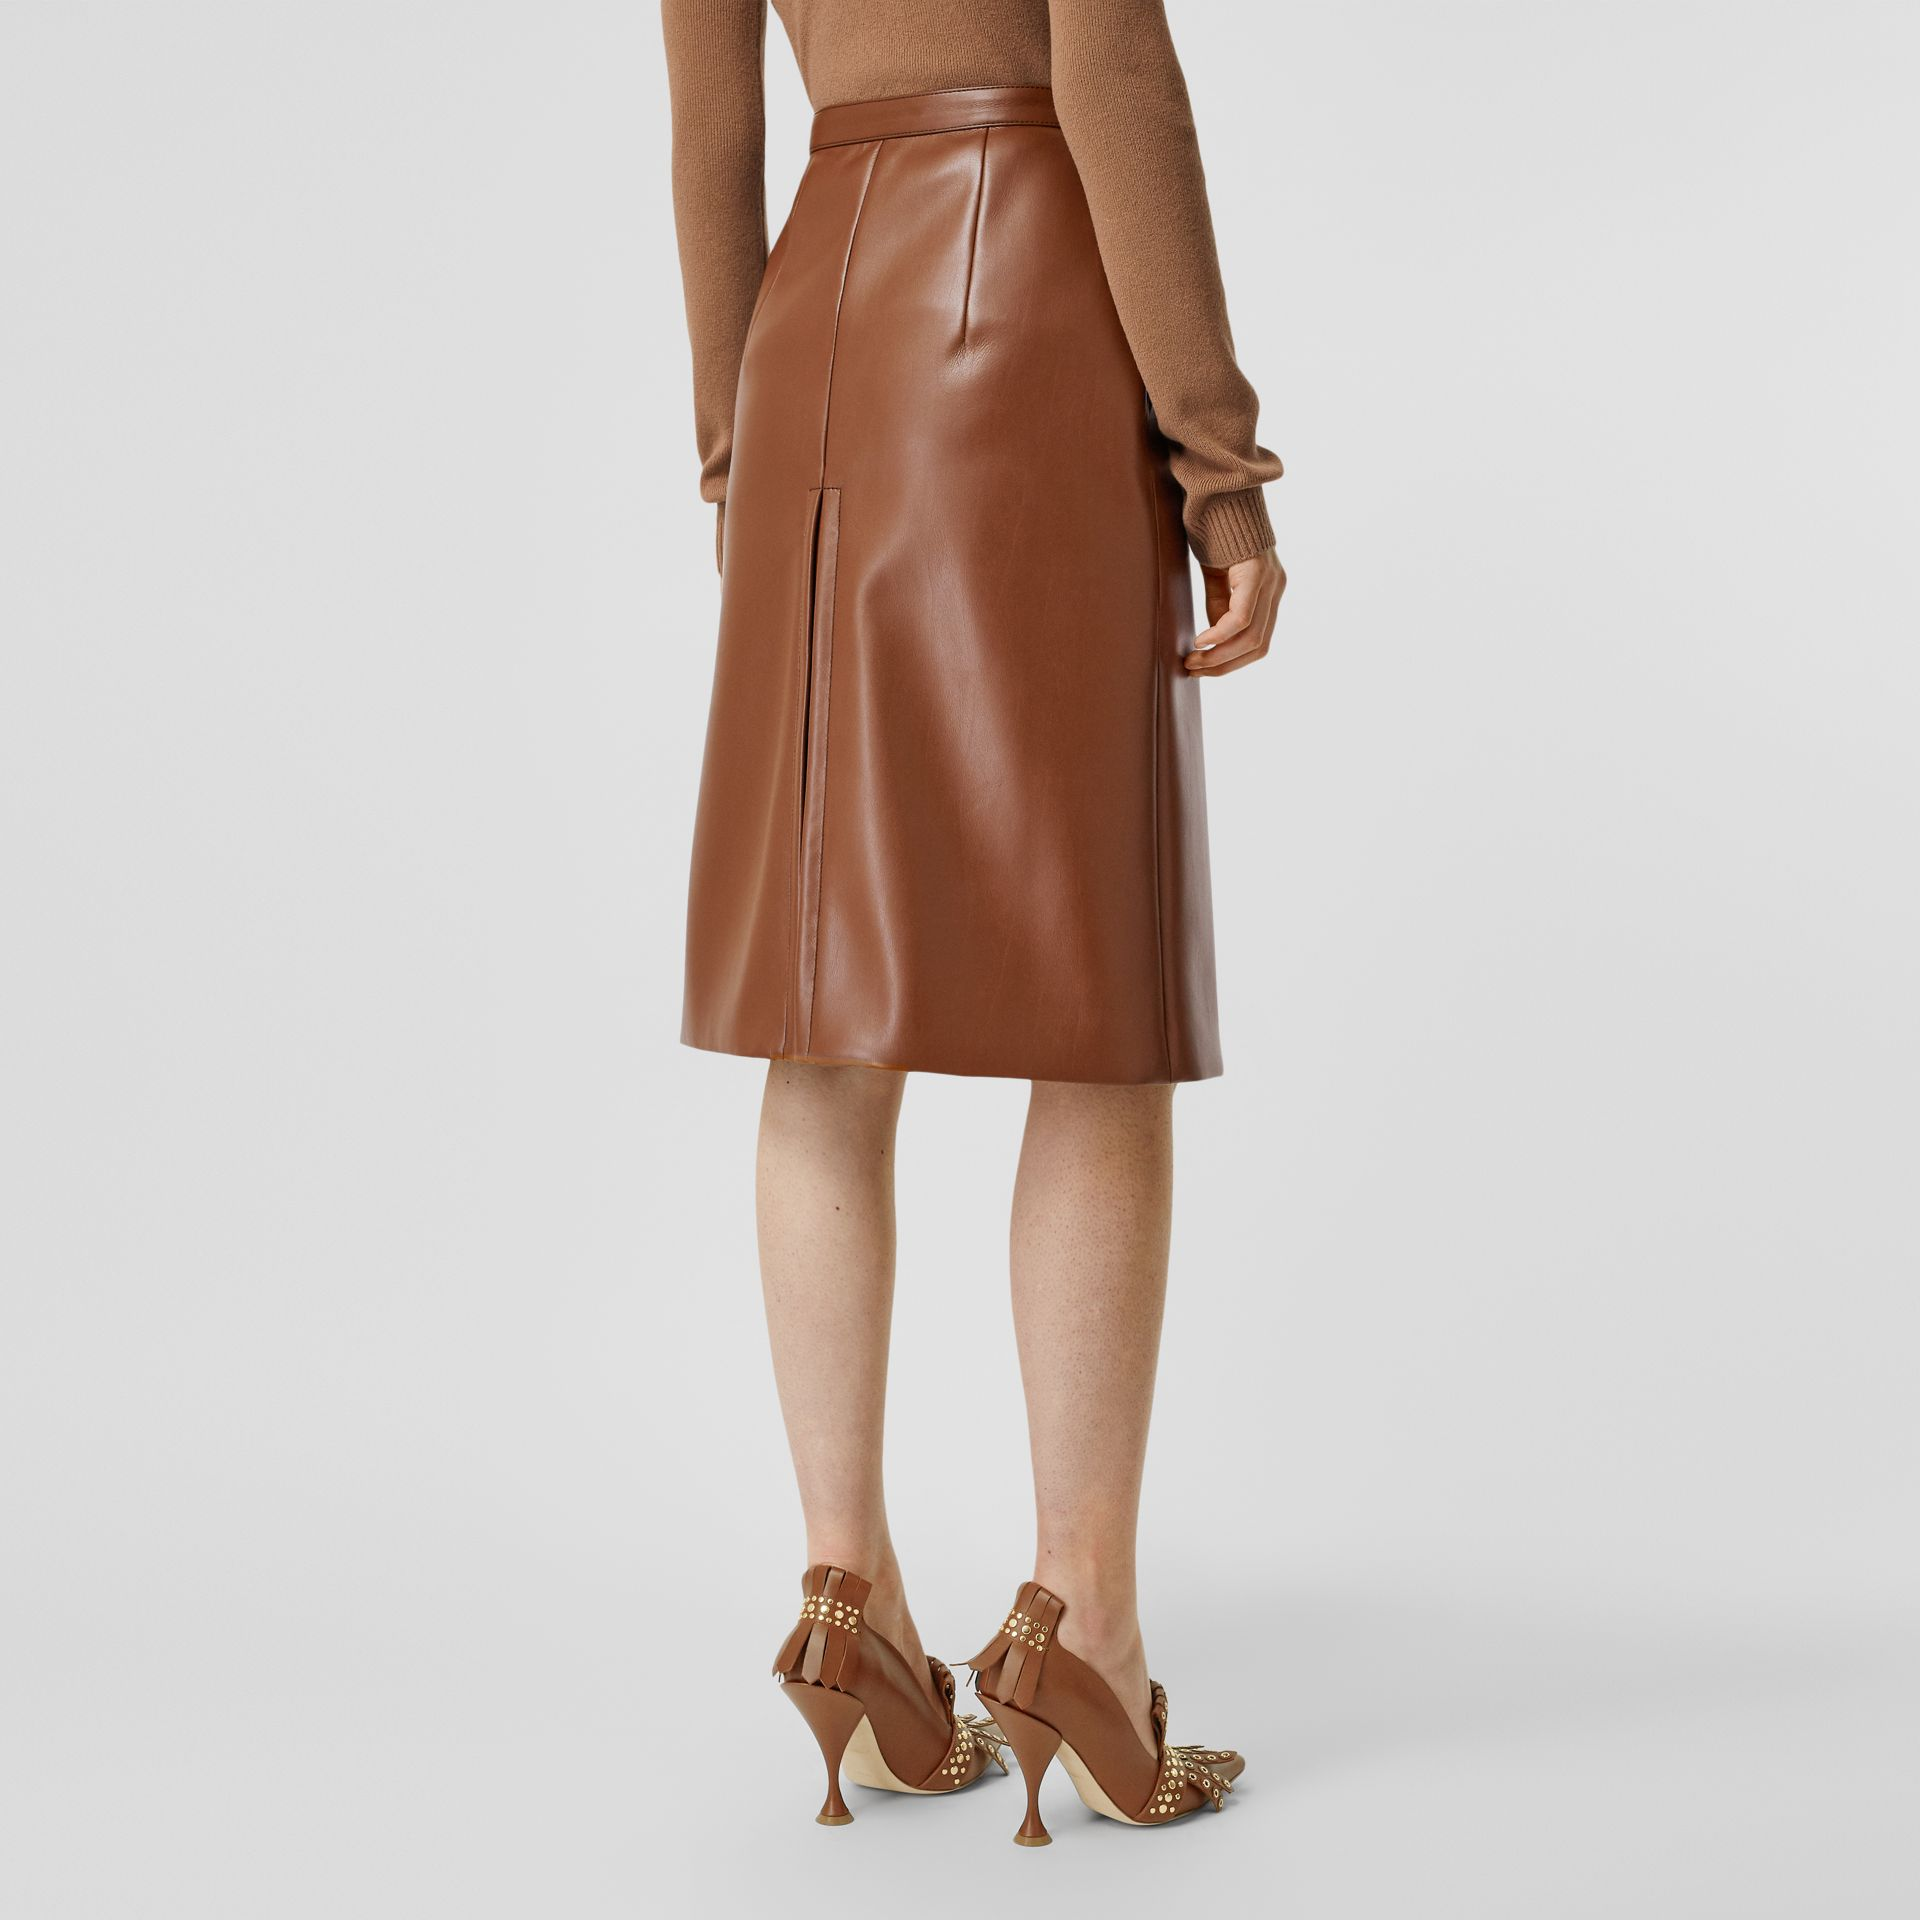 Box Pleat Detail Faux Leather Skirt in Dark Cheshnut Brown - Women | Burberry - gallery image 2